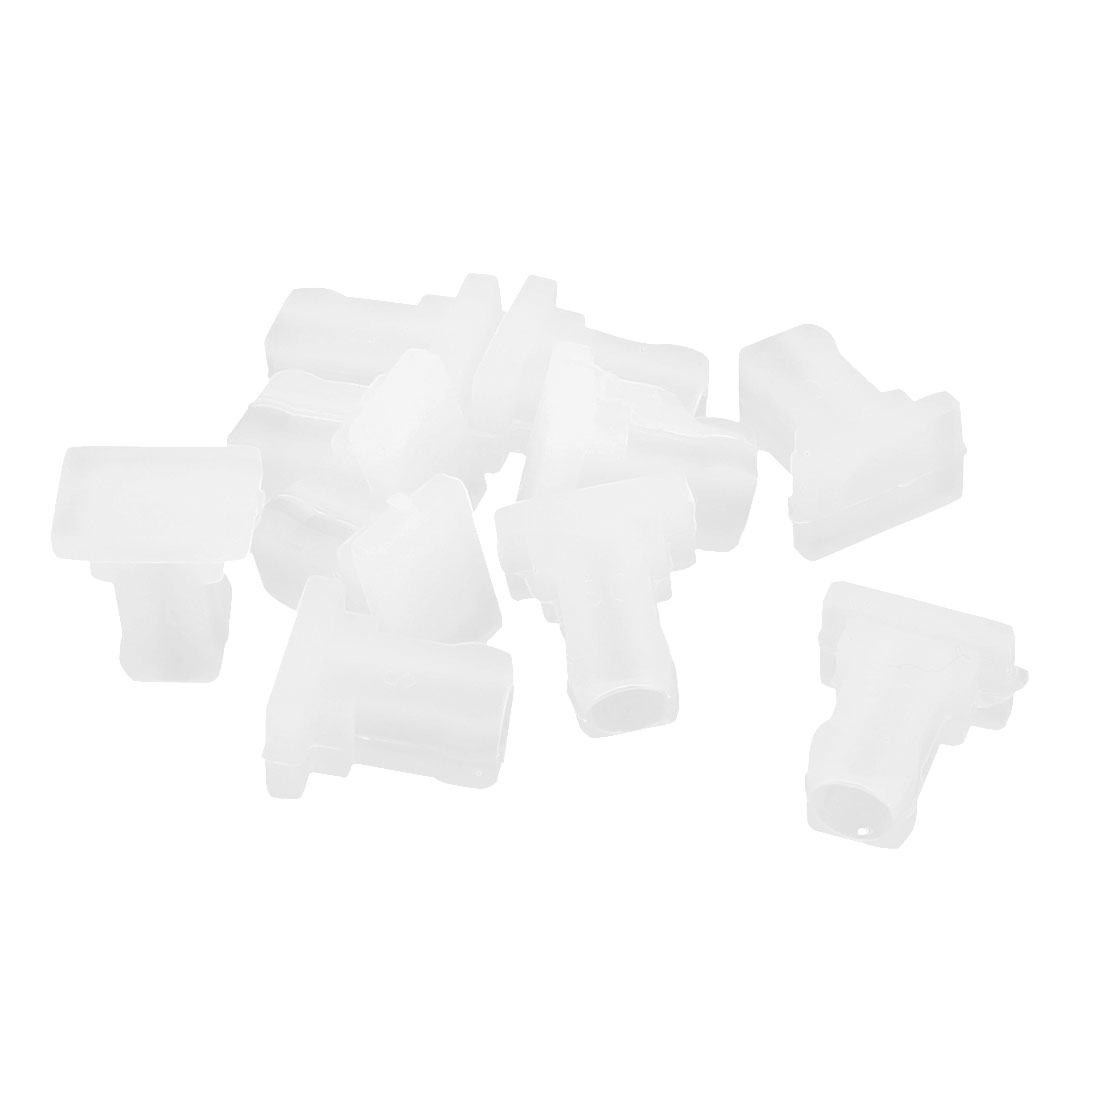 10Pcs Silicone Optical Fiber Router EPON SC Port Anti-Dust Stopper Clear